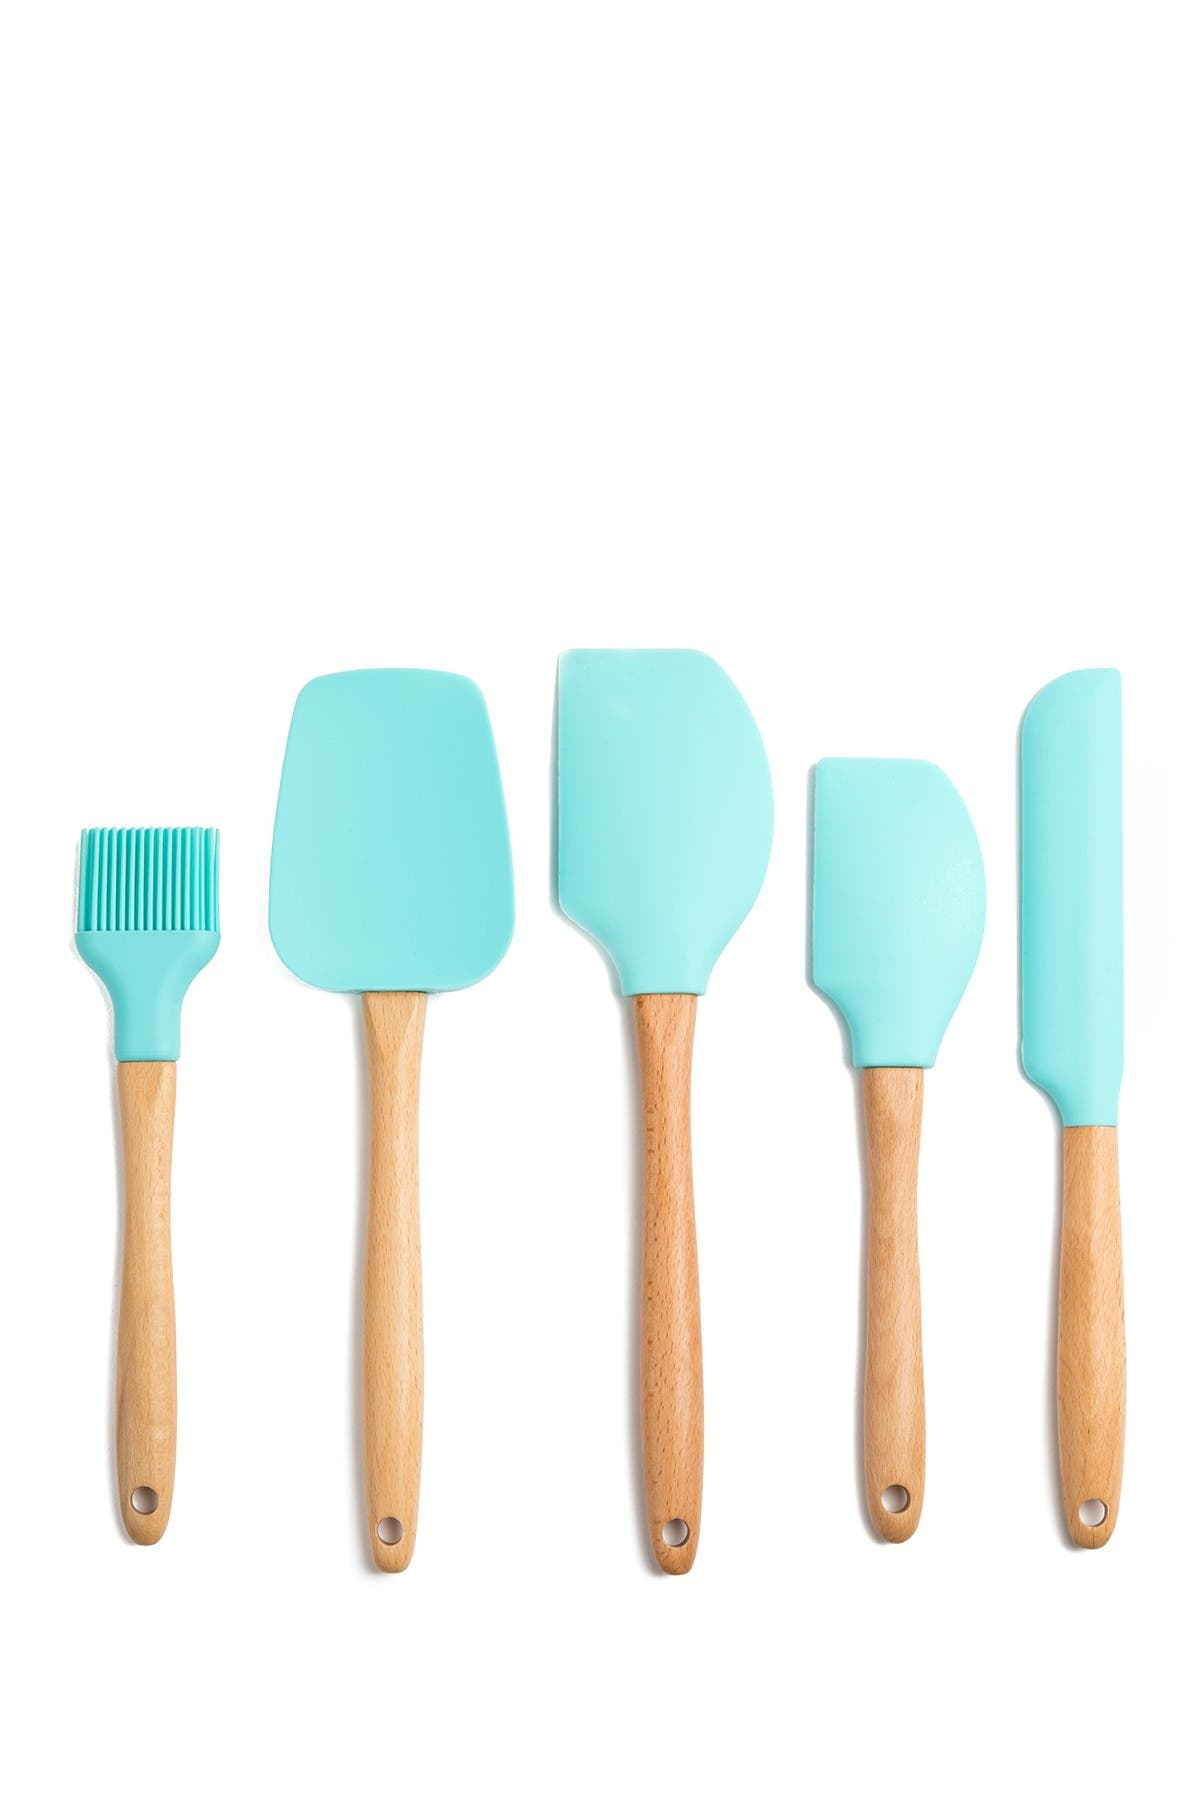 Image of Core Home Beech & Silicone Utensils - 5 Piece Set